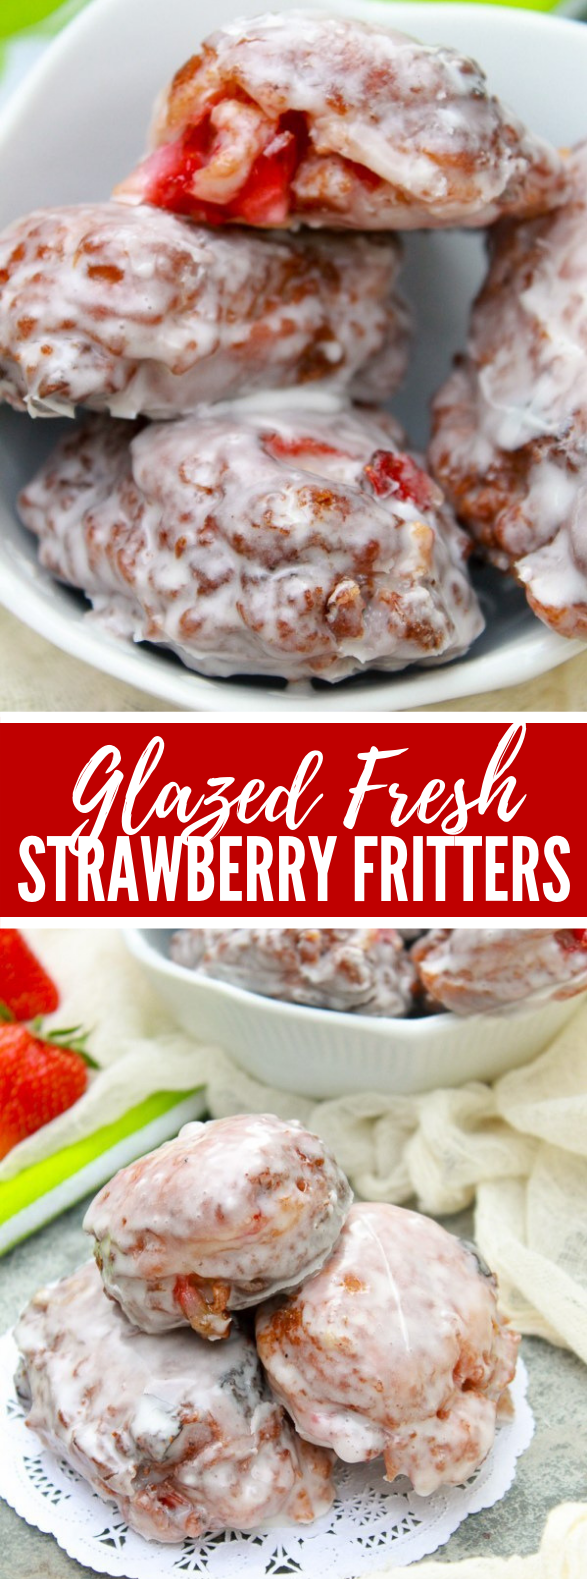 GLAZED FRESH STRAWBERRY FRITTERS #desserts #sweets